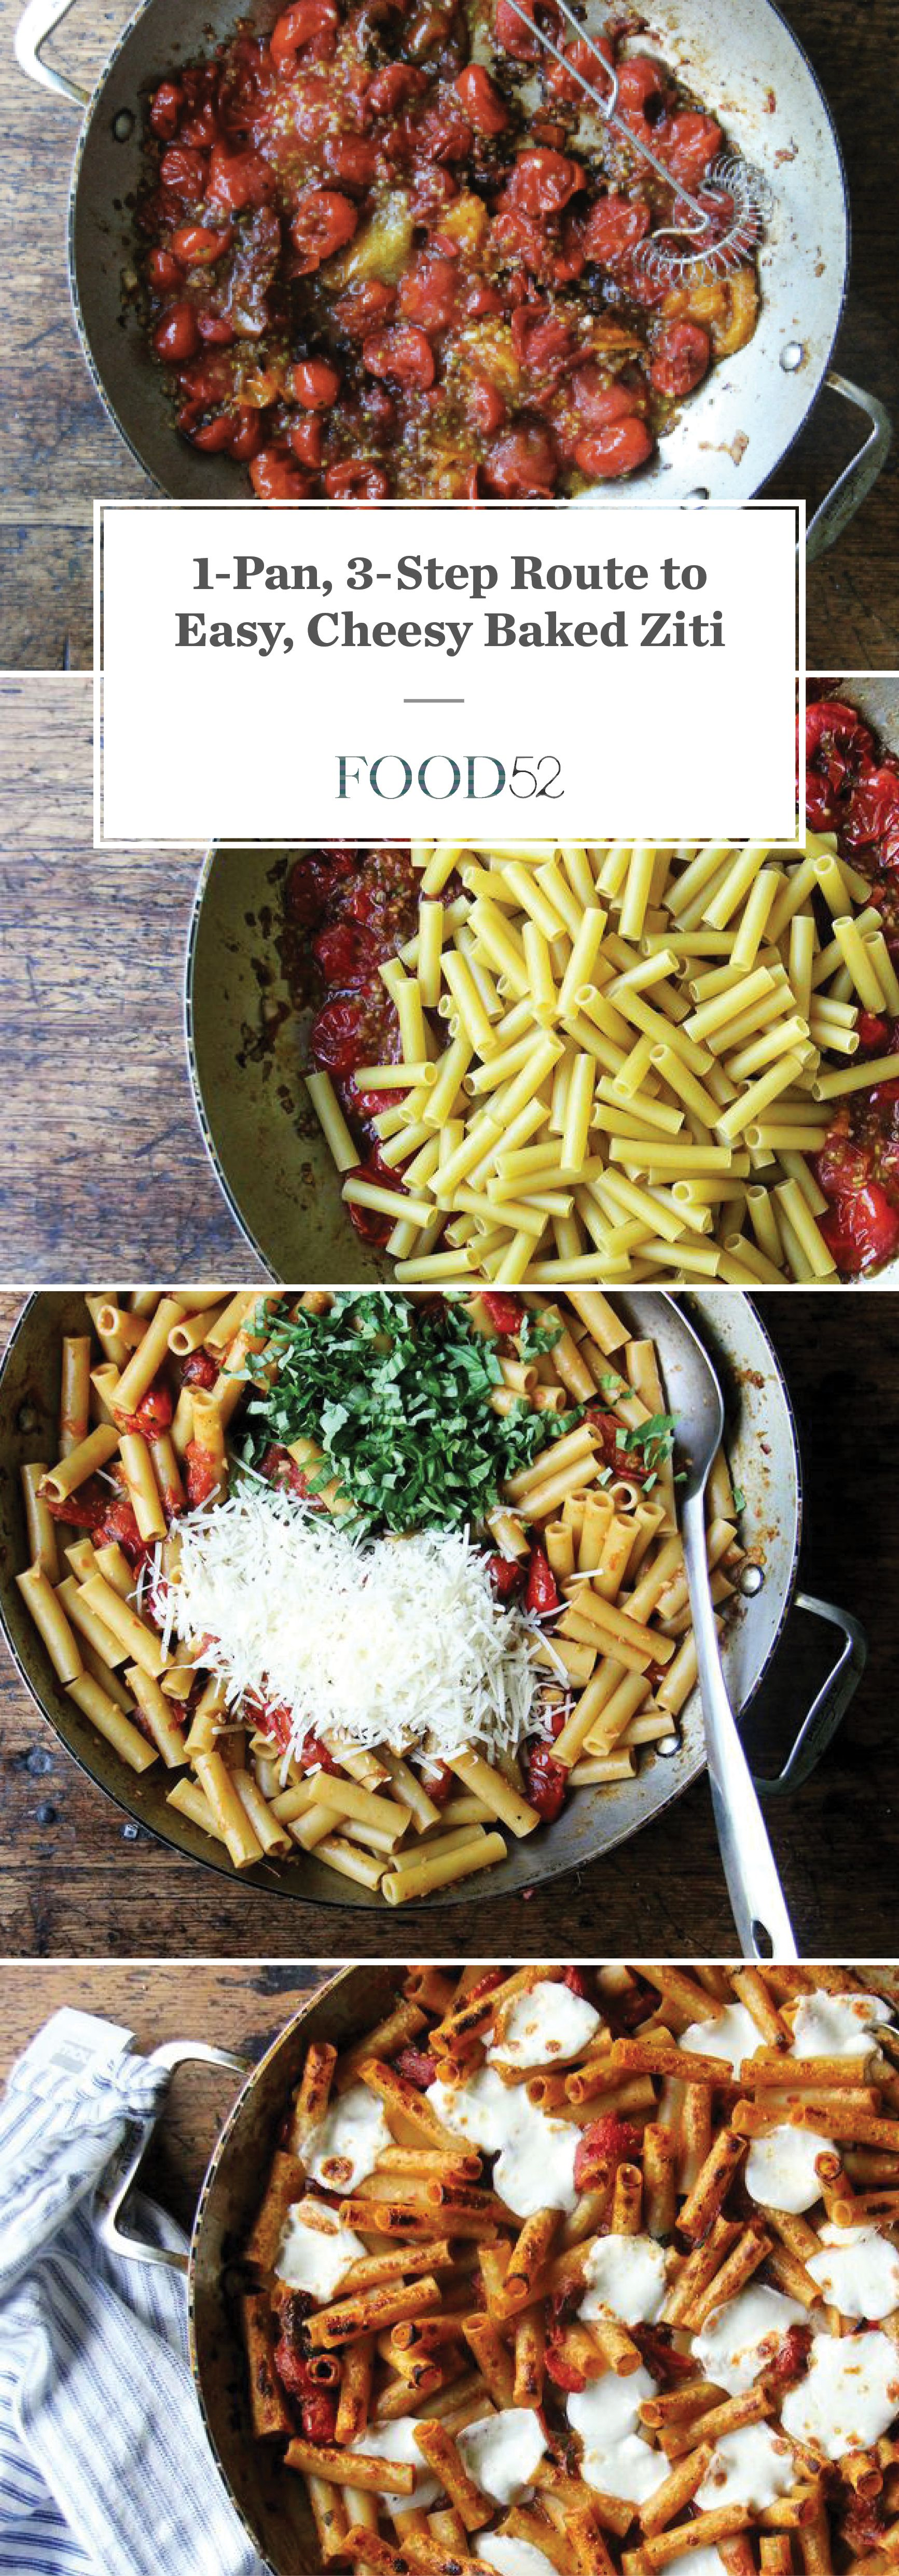 The 1 Pan 3 Step Route To Baked Ziti Baked Ziti Perfect Pasta Easy Baked Ziti